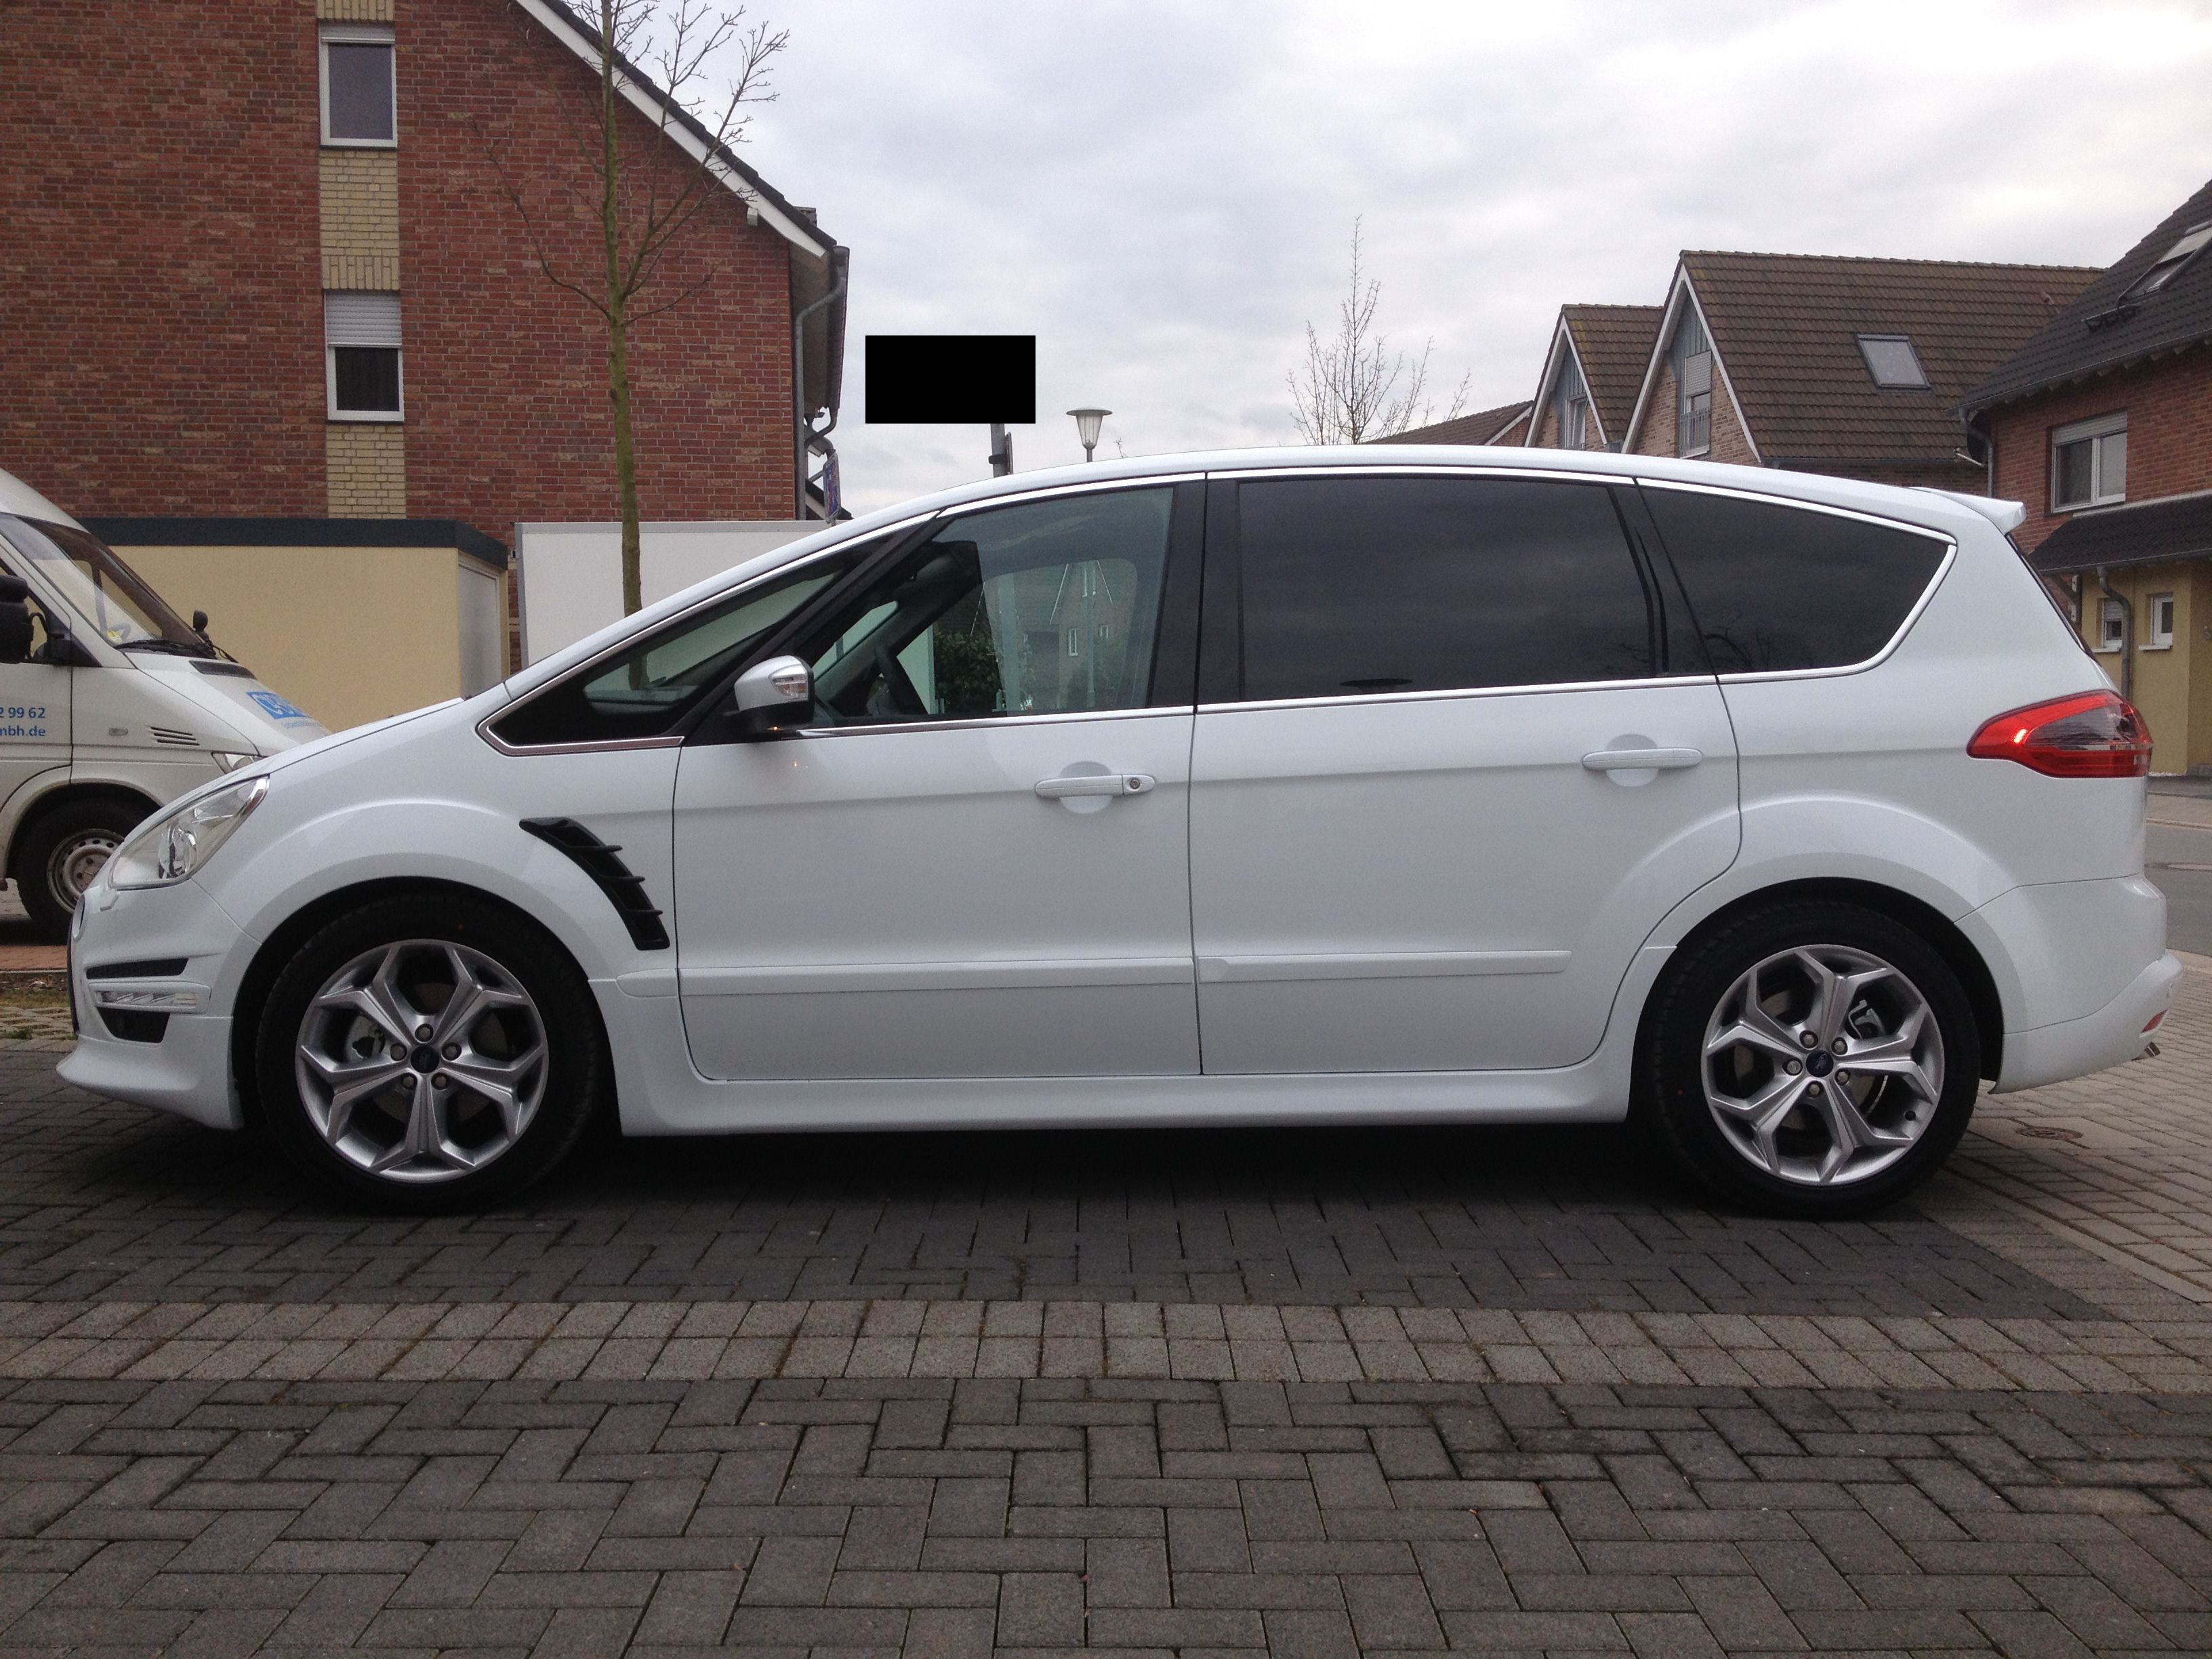 Ford S-Max 2.0 1997 photo - 3